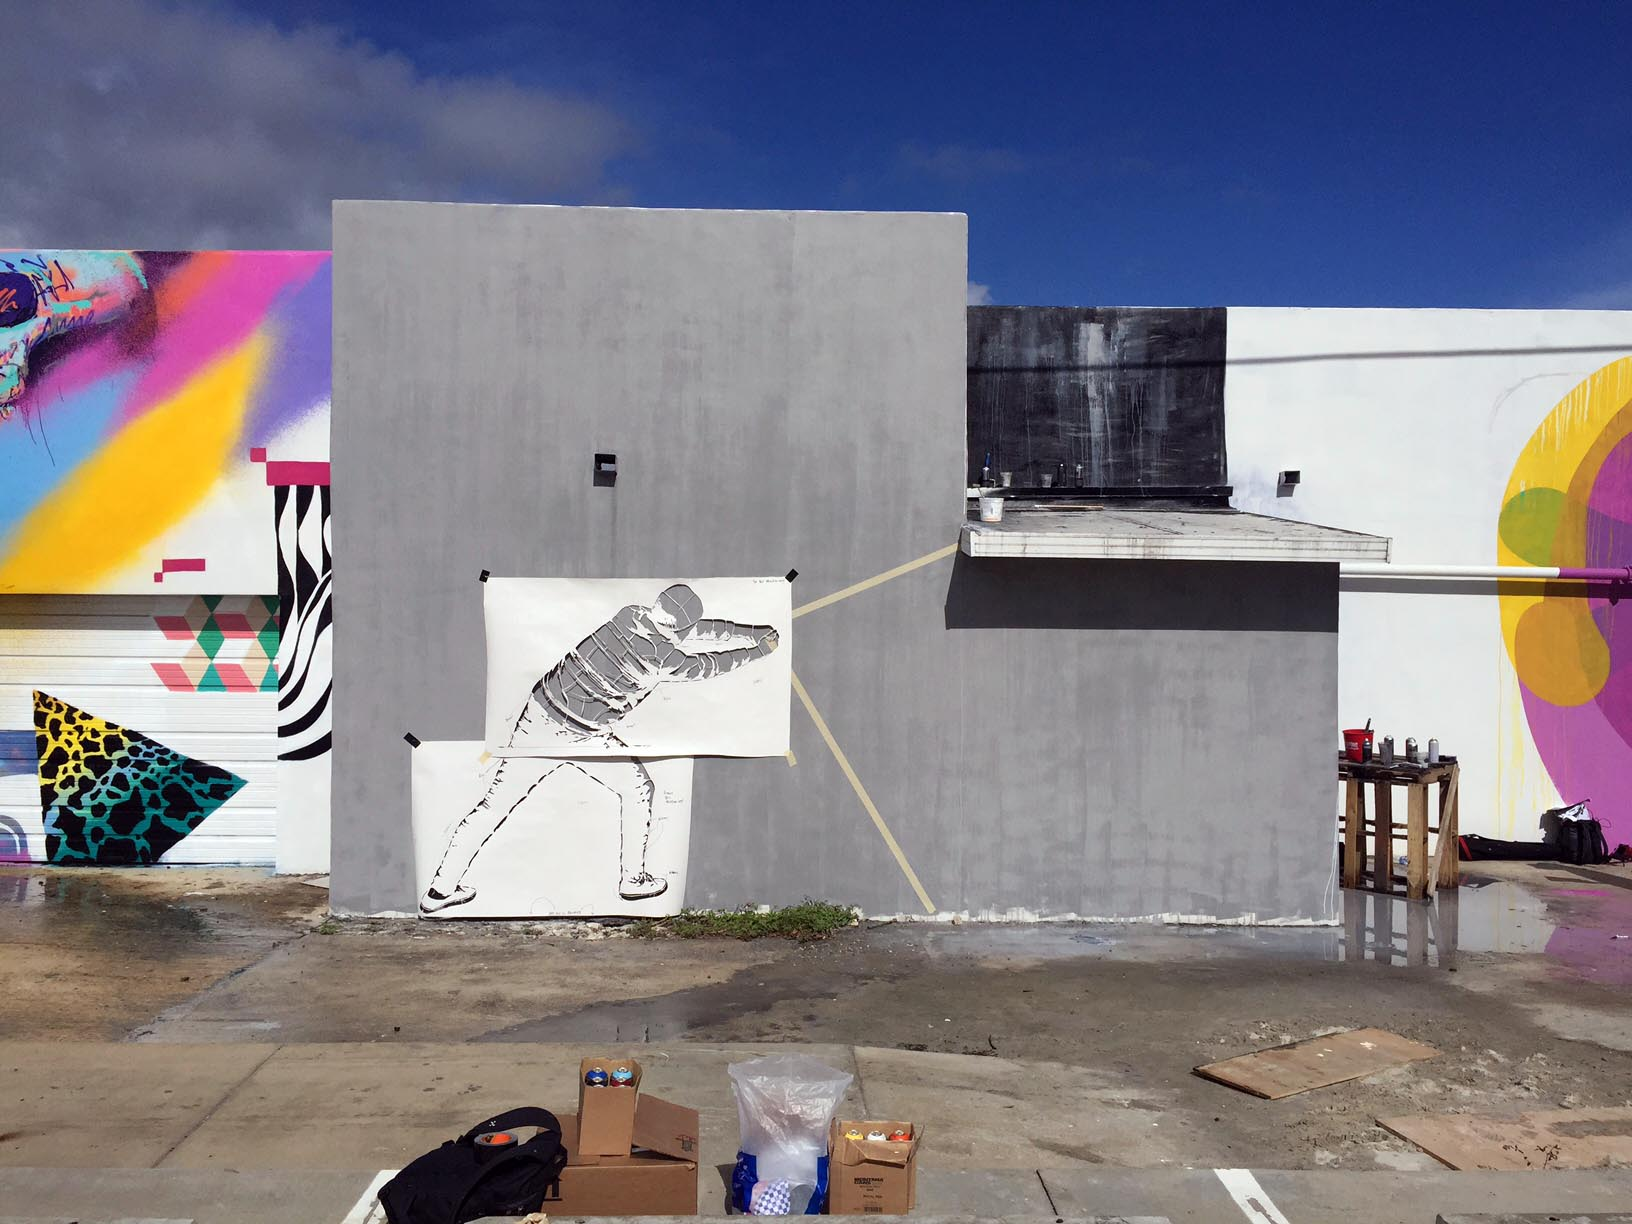 Behind The Curtain by Martin Whatson in Miami